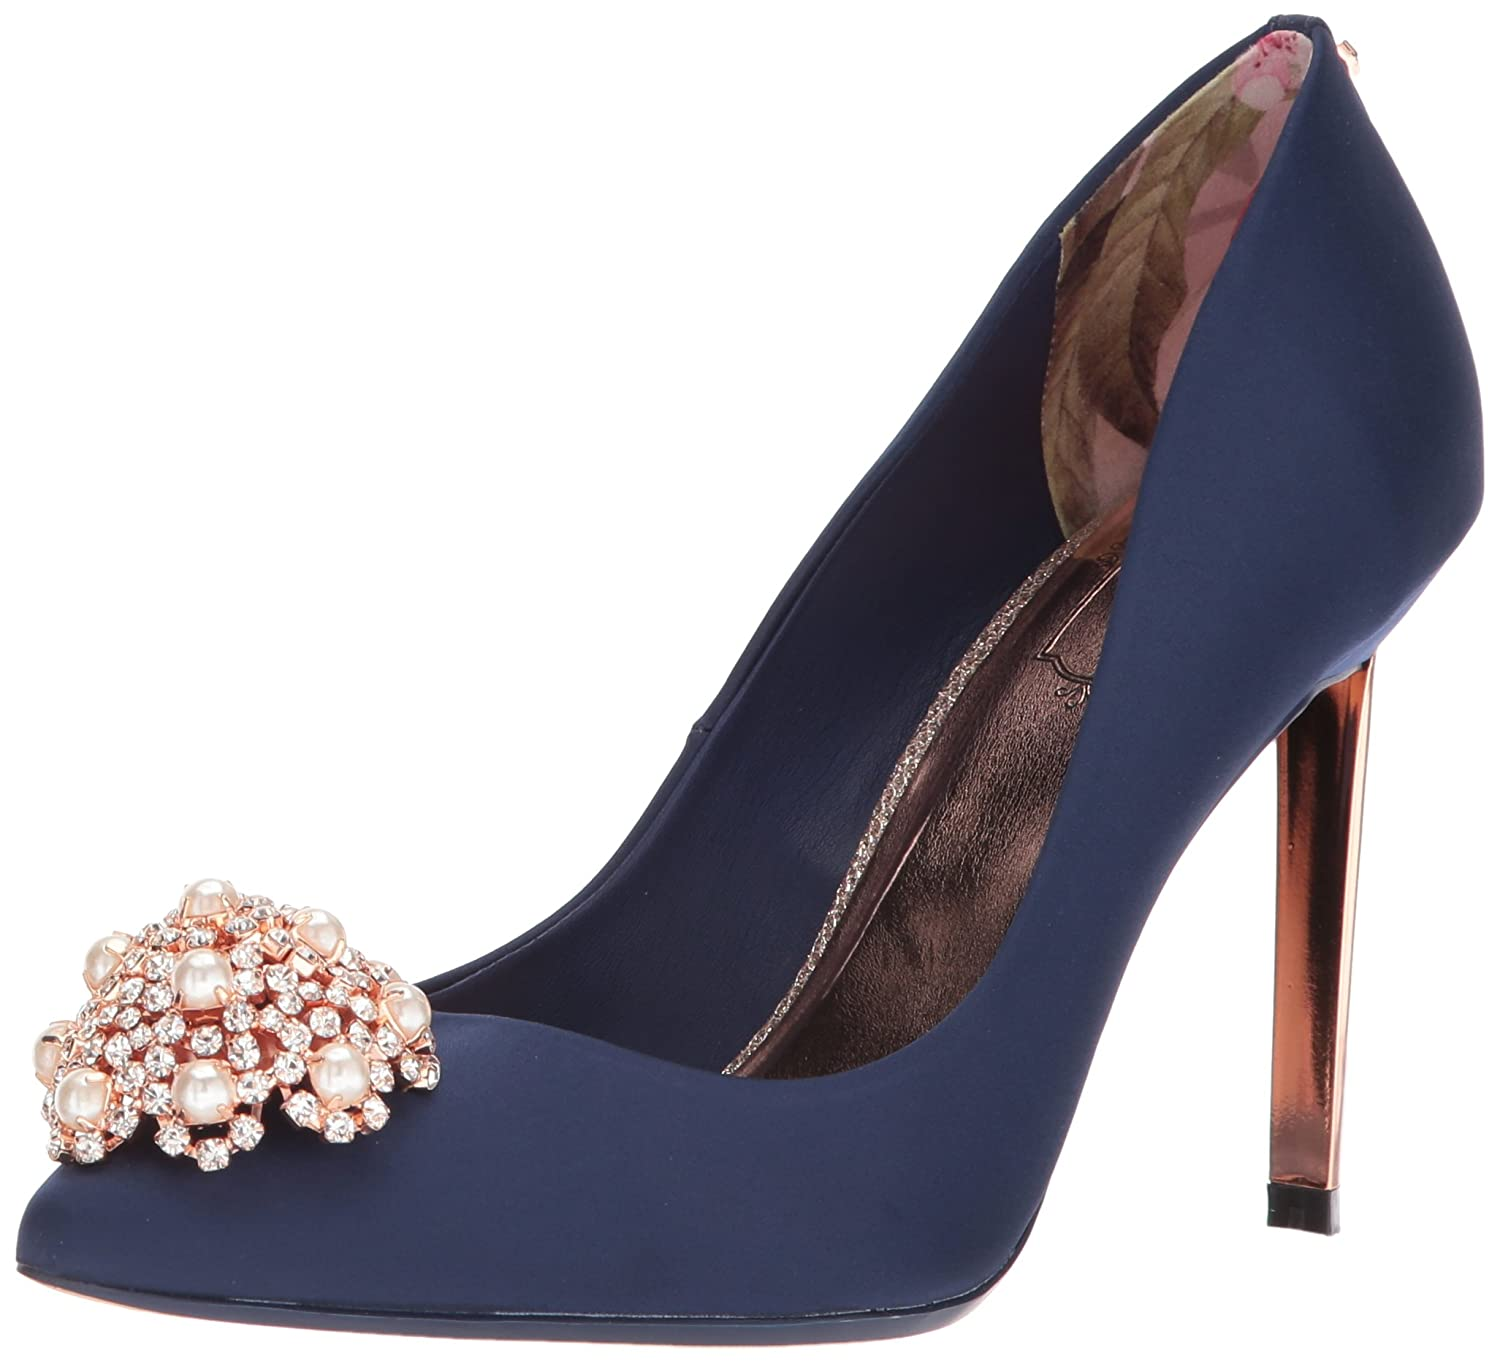 Ted Baker Women's 2 Peetch 2 Pump B071GFXCWT 8 M US|Navy Satin